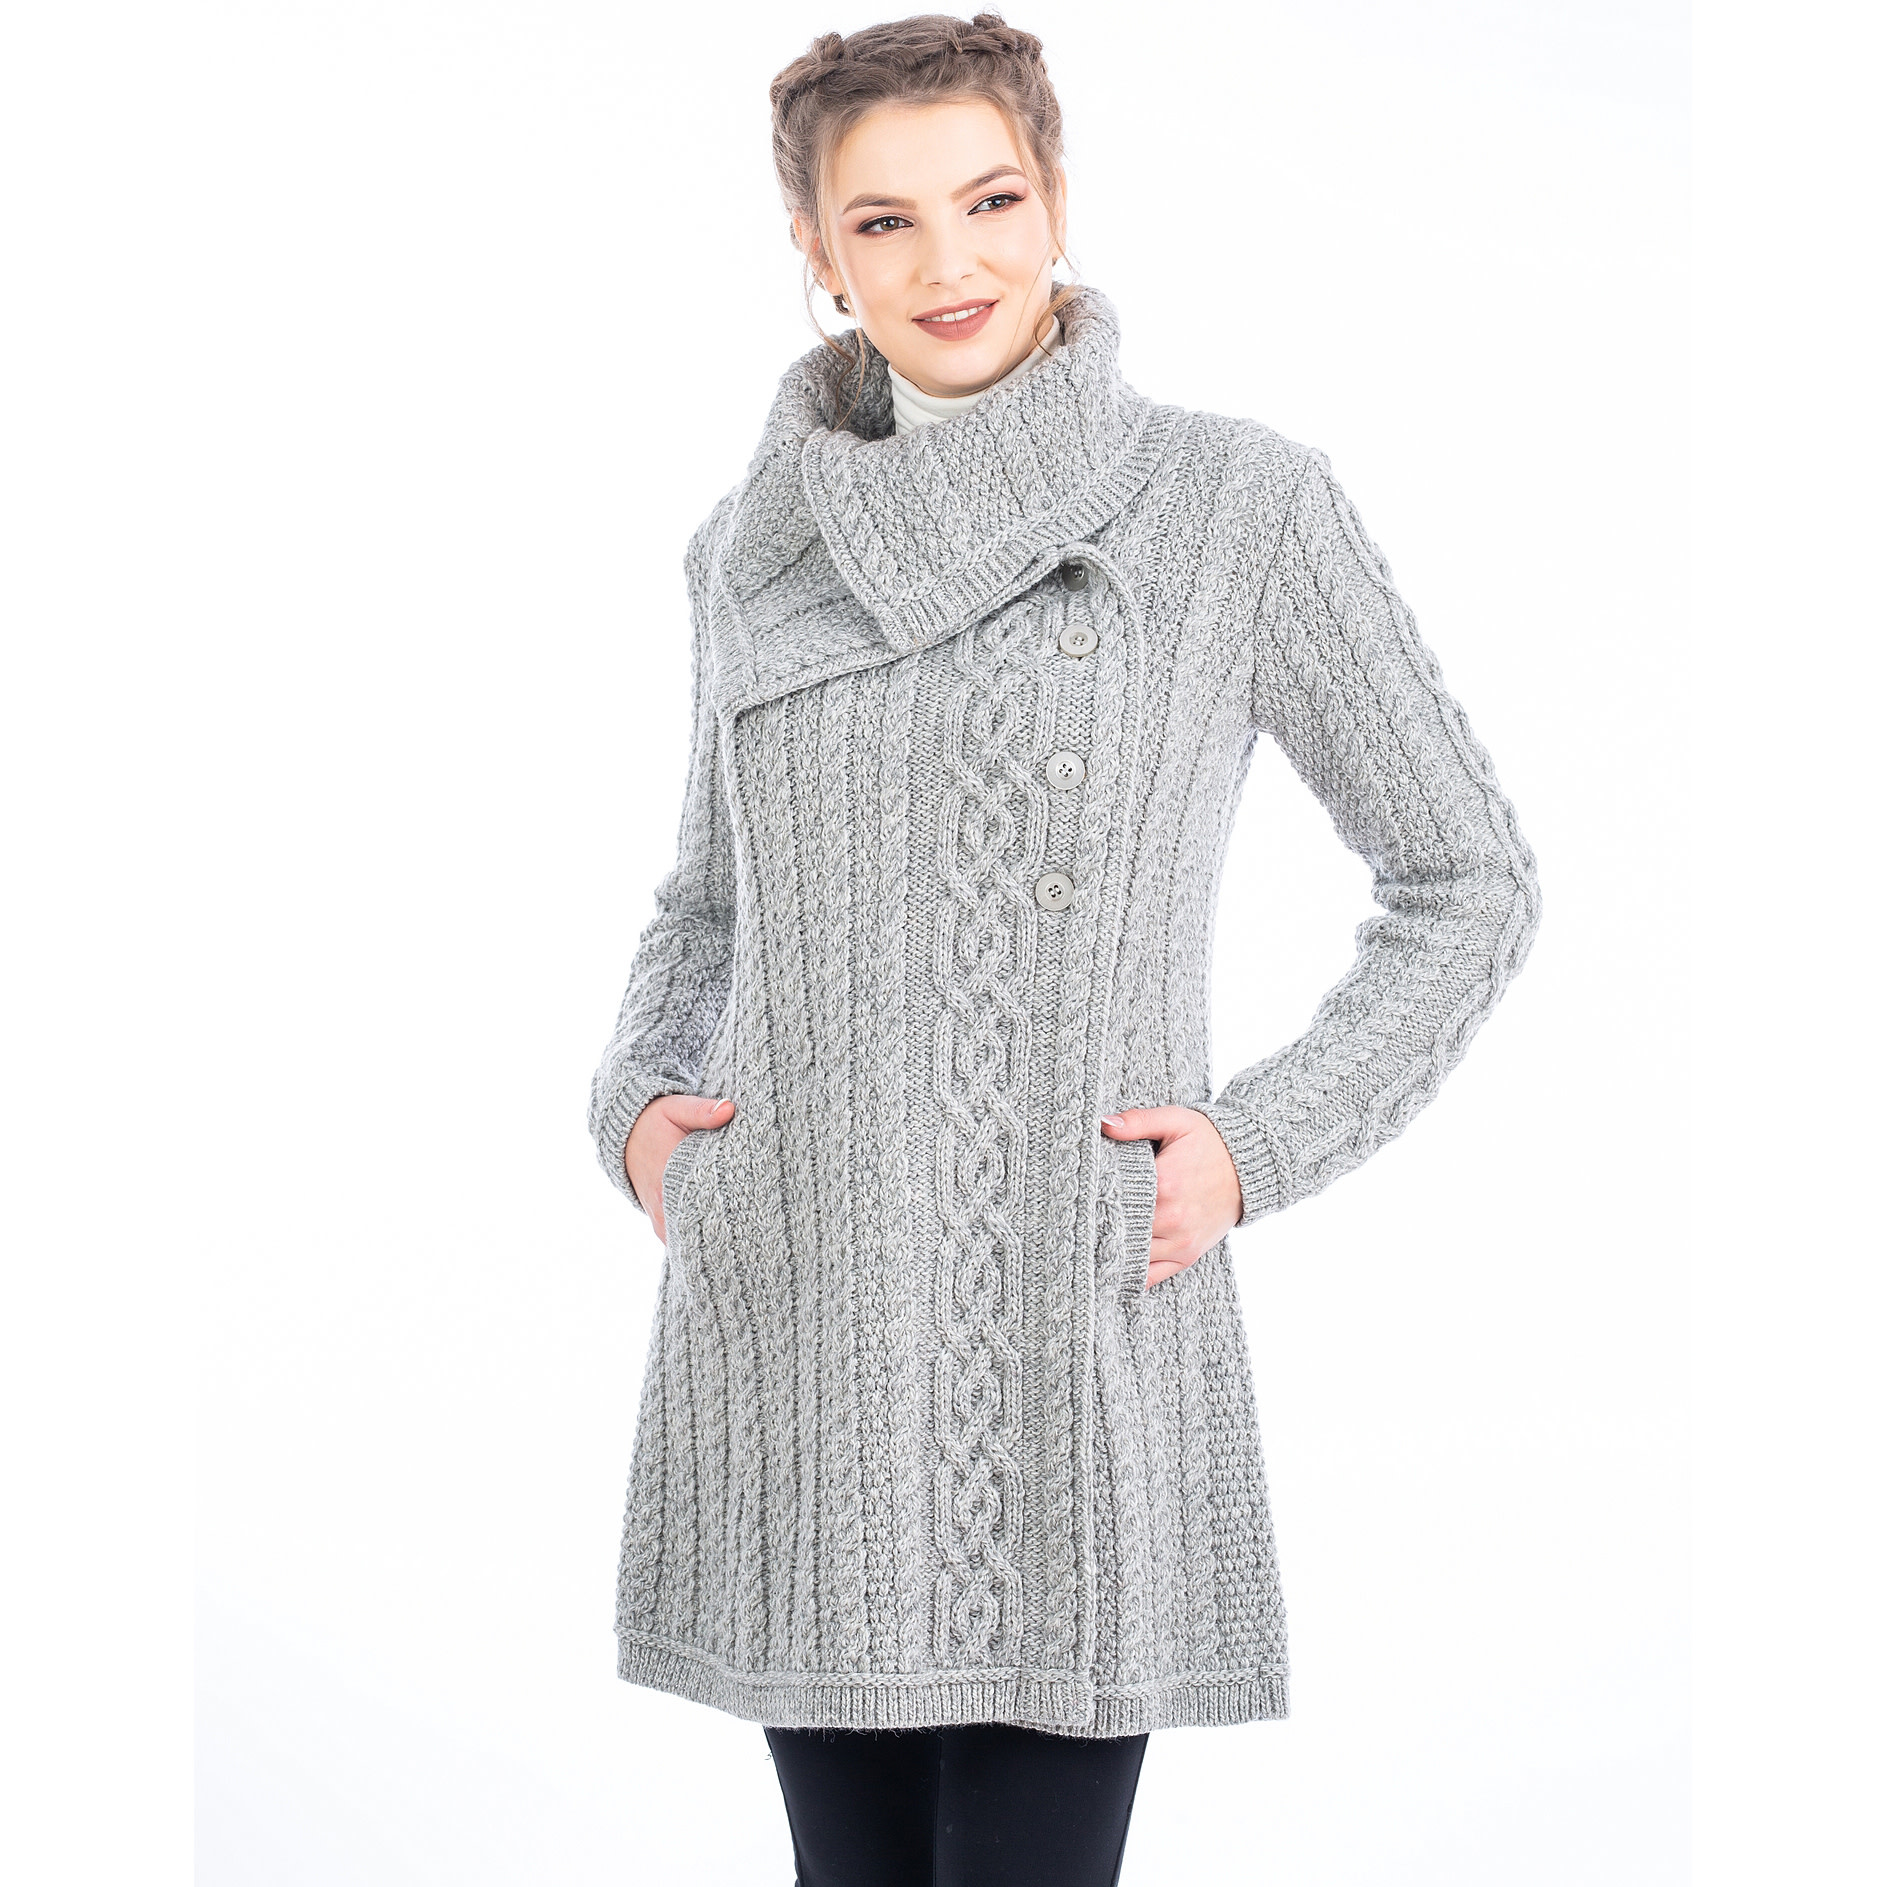 Sweater: Ladies 4 Button Gray